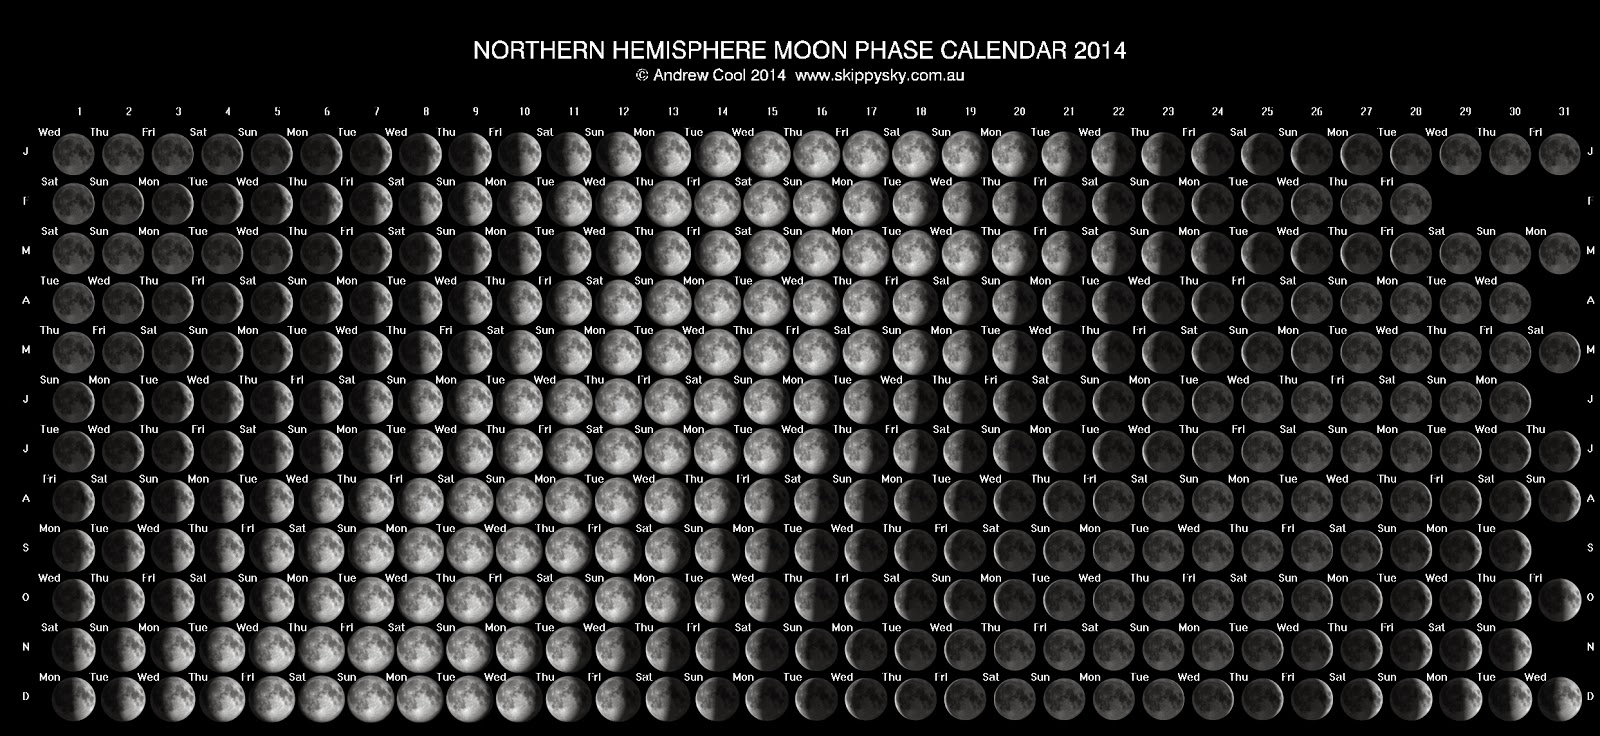 ... of the Night citizen science project: Moon phase calendar for 2014